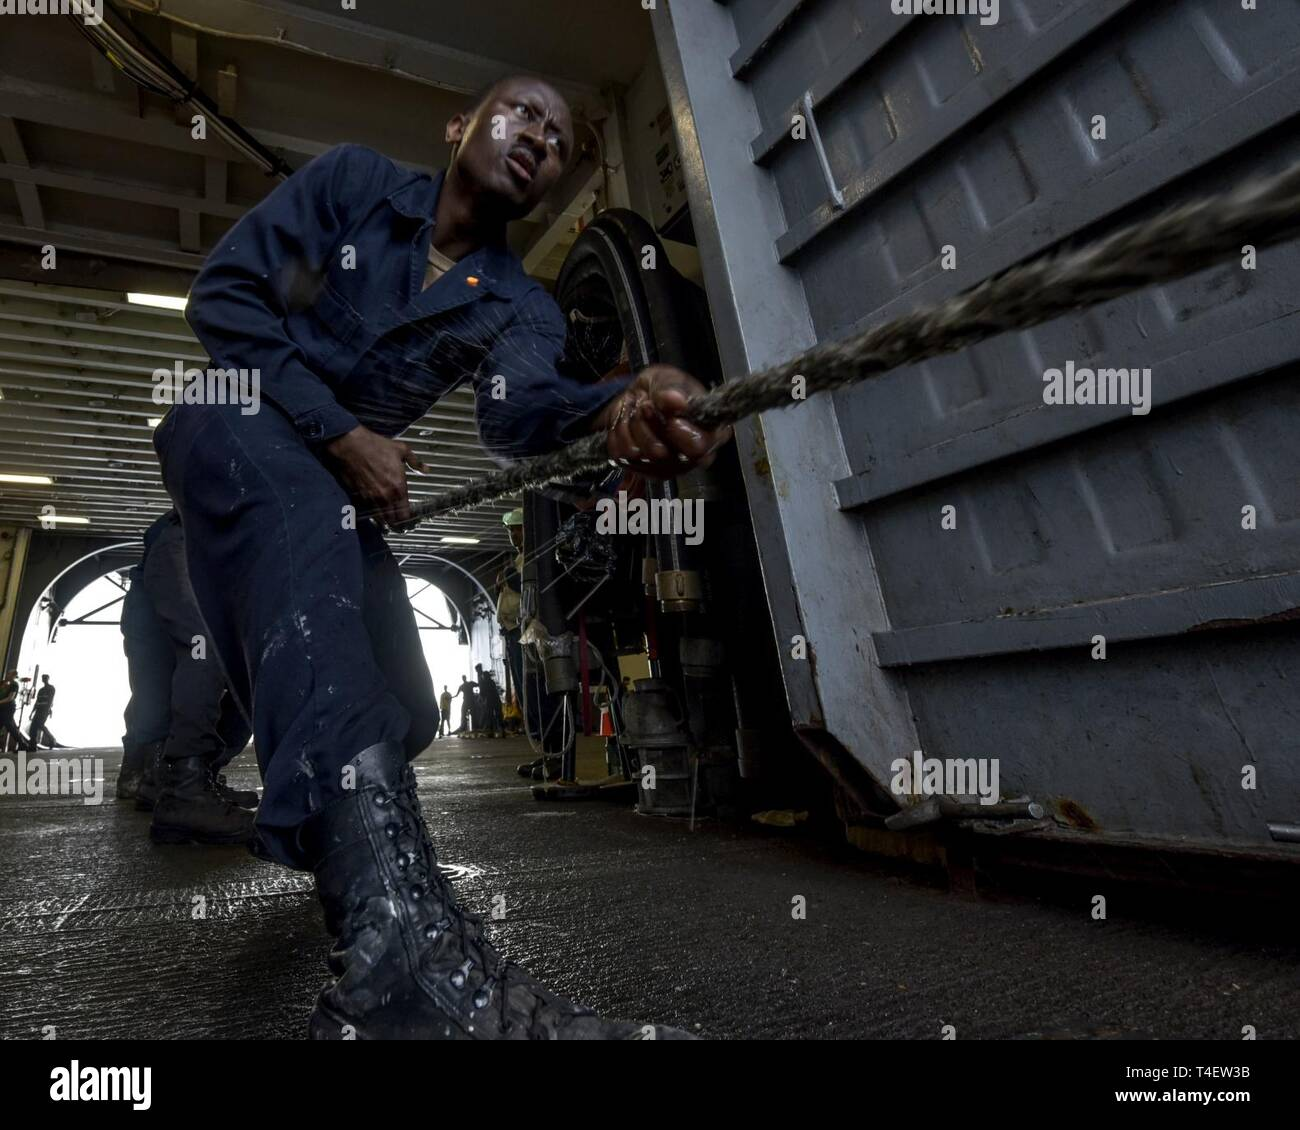 SOUTH CHINA SEA (April 4, 2019) - Seaman Vincent Nsiah, from Brooklyn, N.Y., heaves line onboard the amphibious assault ship USS Wasp (LHD 1) during a replenishment-at-sea with the fleet replenishment oiler USNS Pecos (T-AO 197) during Exercise Balikatan 2019. Exercise Balikatan, in its 35th iteration, is an annual U.S., Philippine military training exercise focused on a variety of missions, including humanitarian assistance and disaster relief, counter-terrorism, and other combined military operations. - Stock Image